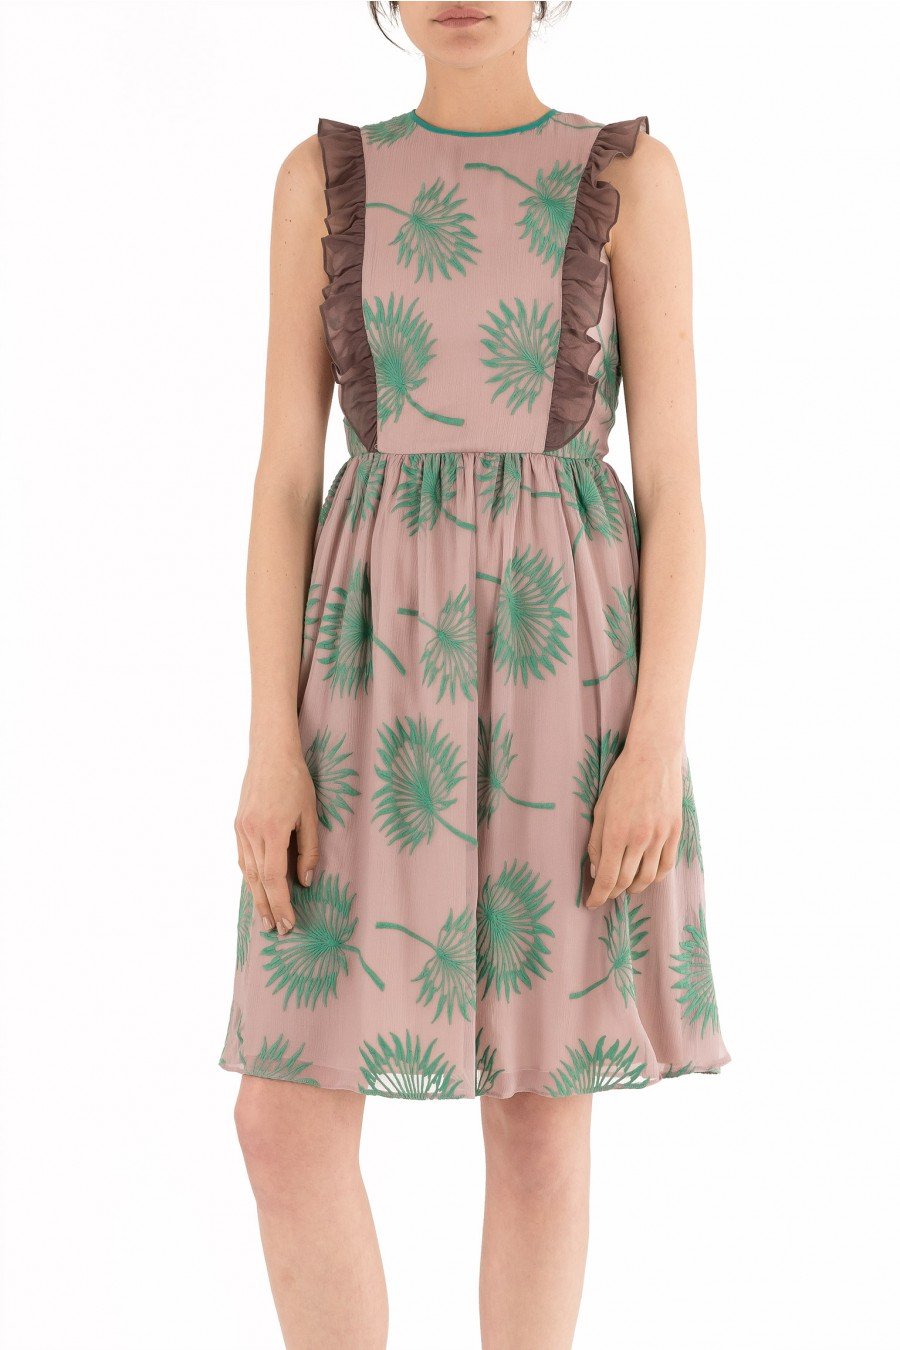 Pink dress with green embroidery